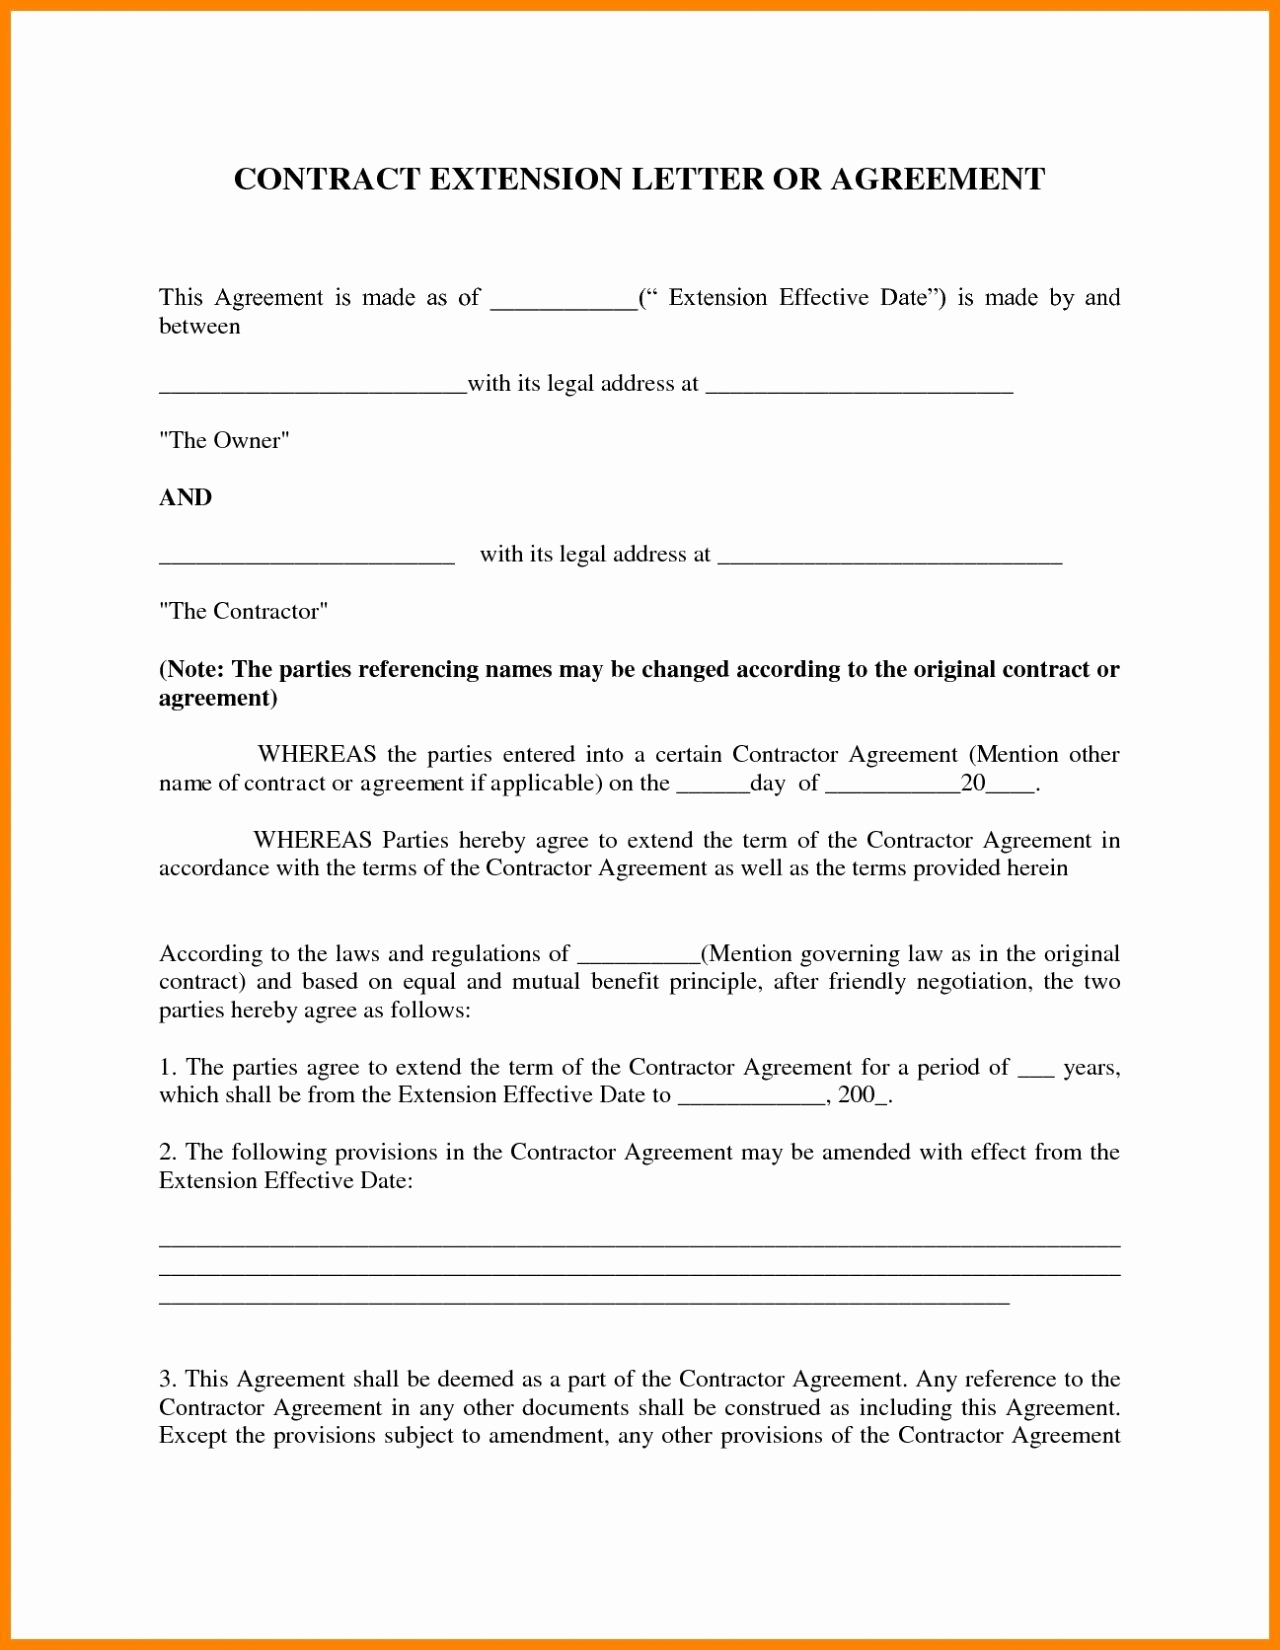 Parent Letter to Child Template - Casual Employment Contract Template 31 50 Elegant Free Parent Child